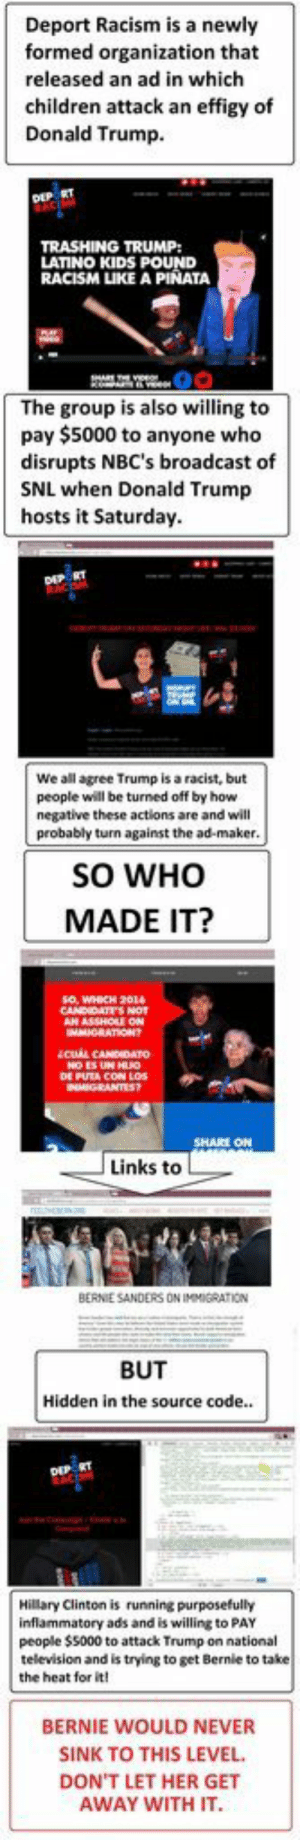 Clinton running inflammatory ads attacking Trump but tries to blame Bernie sandershttp://omg-humor.tumblr.com: Deport Racism is a newly  formed organization that  released an ad in which  children attack an effigy of  Donald Trump.  DEP RT  TRASHING TRUMP:  LATINO KIDS POUND  RACISM LIKE A PIÑATA  The group is also willing to  pay $5000 to anyone who  disrupts NBC's broadcast of  SNL when Donald Trump  hosts it Saturday.  DEP RT  We all agree Trump is a racist, but  people will be turned off by how  negative these actions are and will  probably turn against the ad-maker.  SO WHO  MADE IT?  so, WHICH 2014  CANDIDATES NOT  mytOU ON  MMIGRATIONT  icu CANDIDATO  NO ES UN HUO  DE PUTA CON LOs  NMIGRANTES?  SHARE ON  Links to  BERNIE SANDERS ON IMMIGRATION  BUT  Hidden in the source code..  DIP RT  Hillary Clinton is running purposefully  inflammatory ads and is willing to PAY  people $5000 to attack Trump on national  television and is trying to get Bernie to take  the heat for it!  BERNIE WOULD NEVER  SINK TO THIS LEVEL.  DON'T LET HER GET  AWAY WITH IT. Clinton running inflammatory ads attacking Trump but tries to blame Bernie sandershttp://omg-humor.tumblr.com